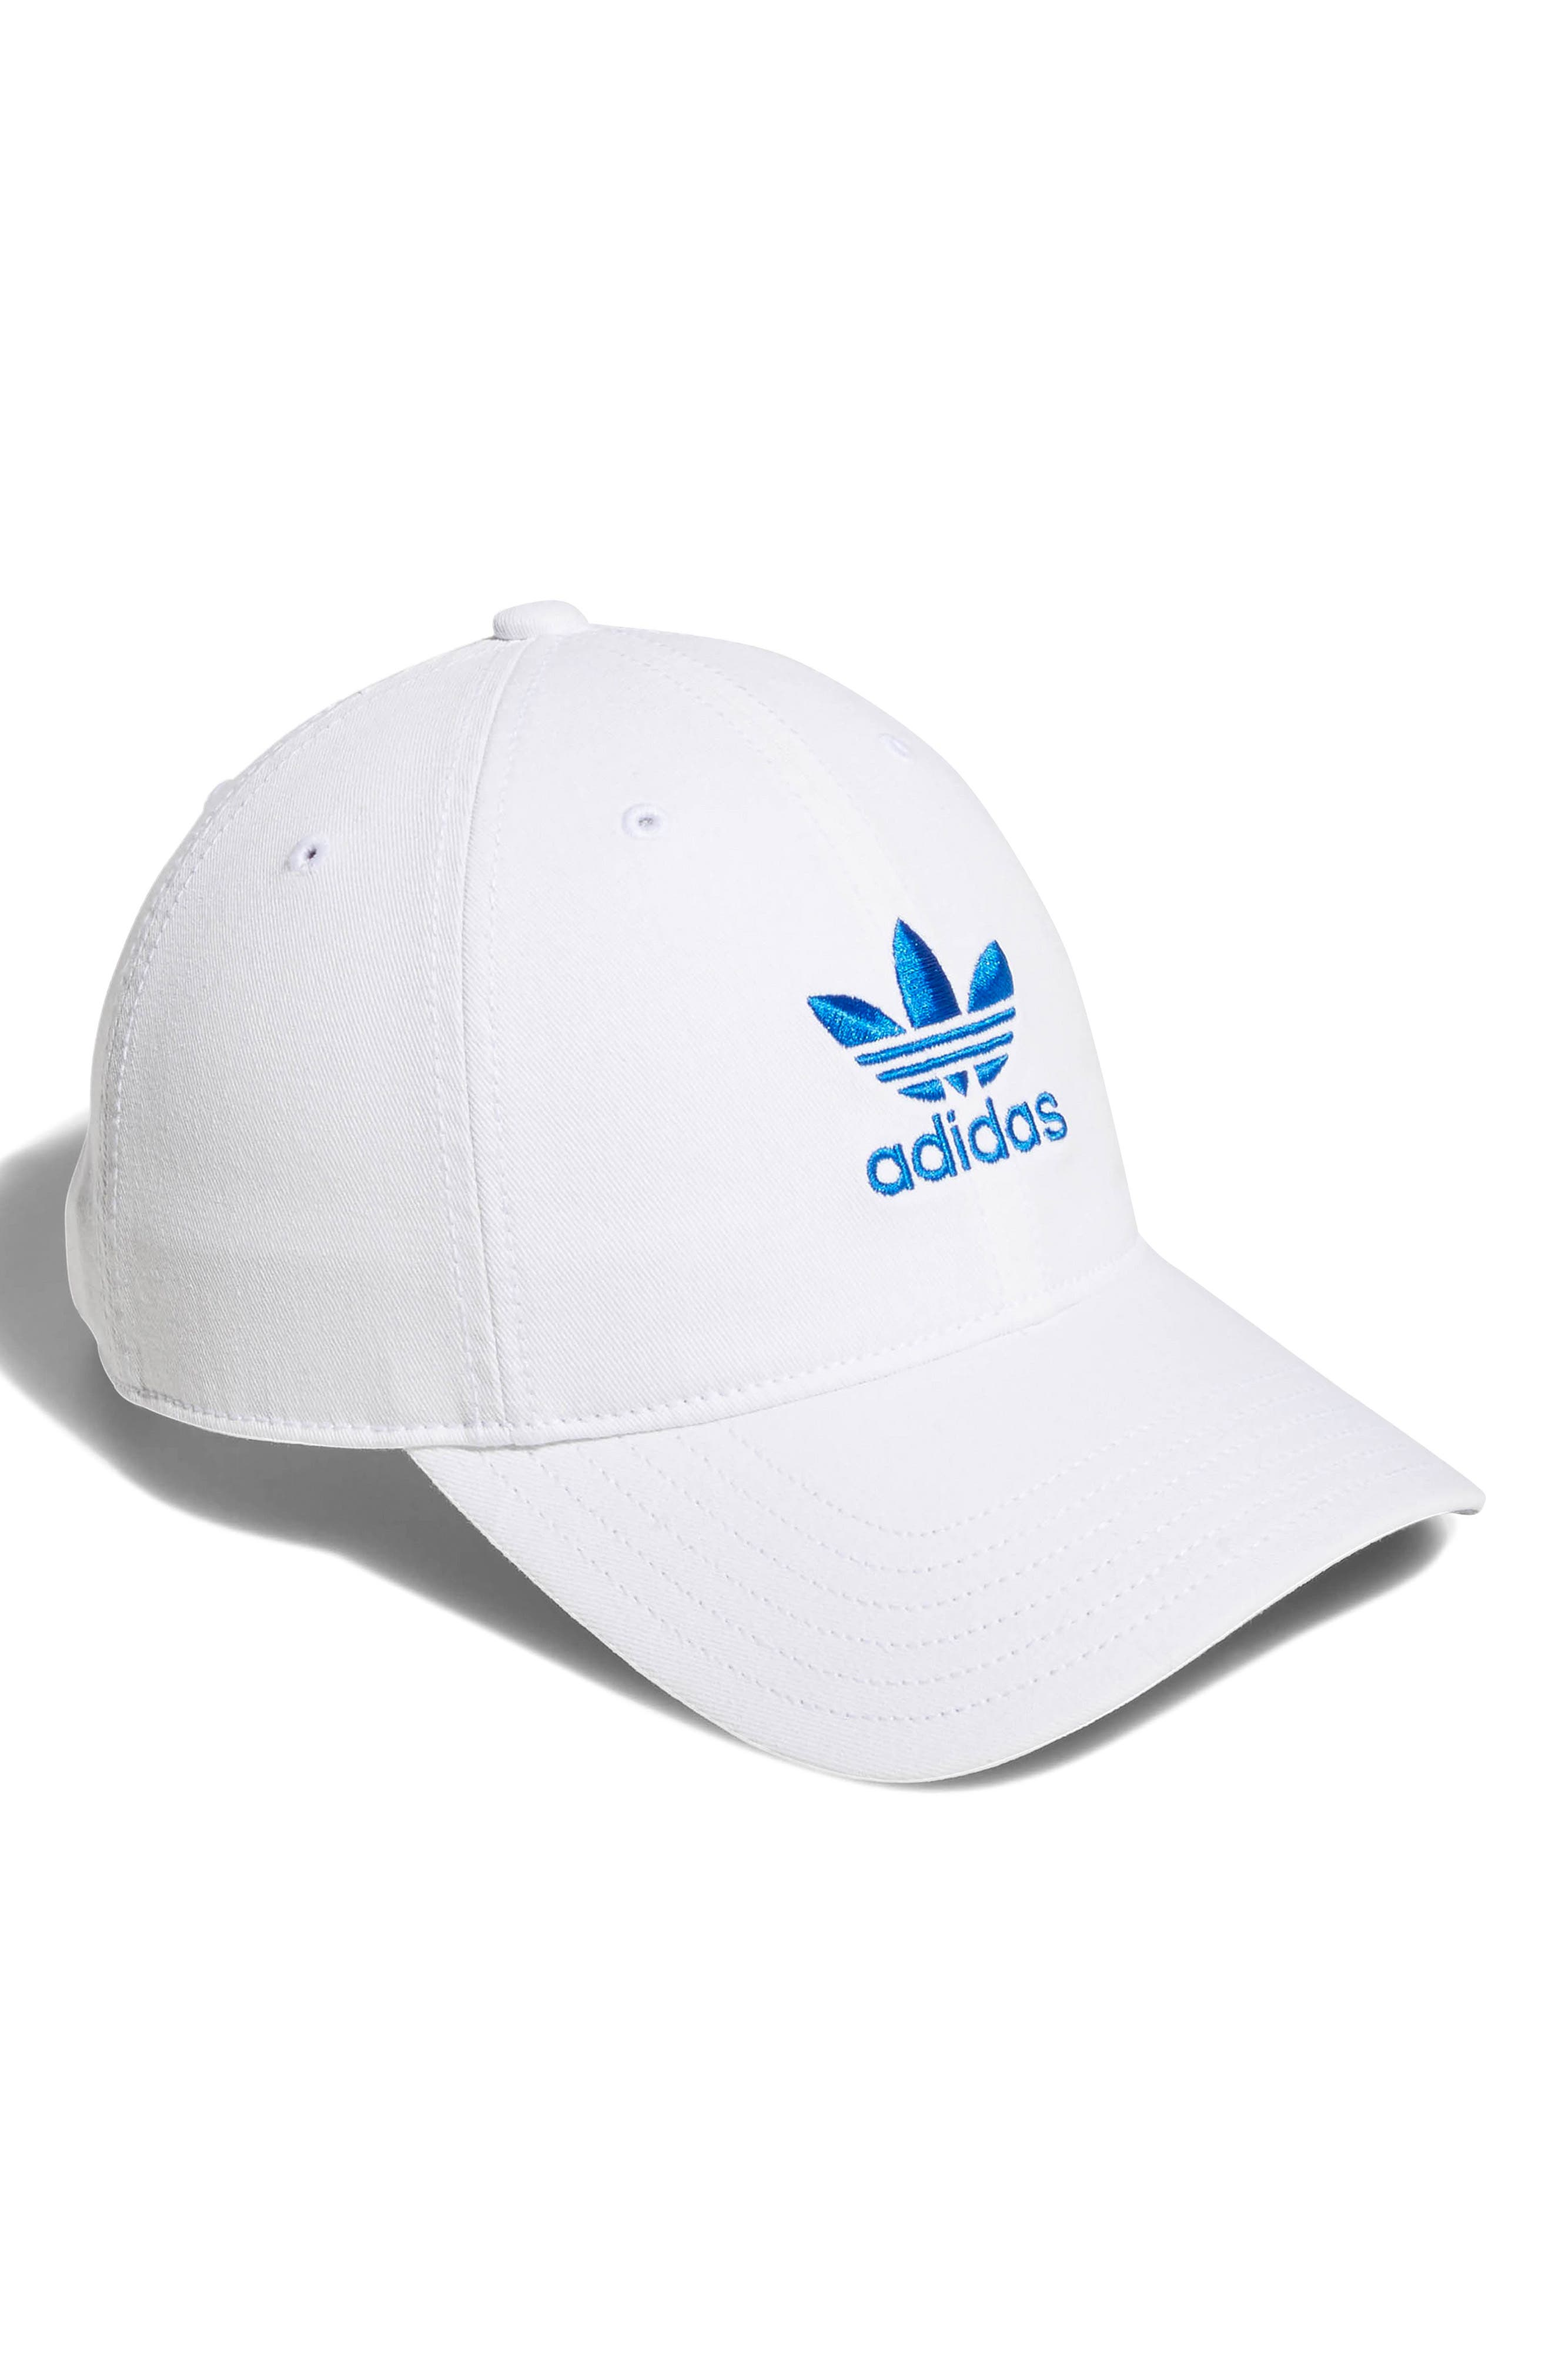 Relaxed Strap-Back Cap,                         Main,                         color, White/ Bluebird